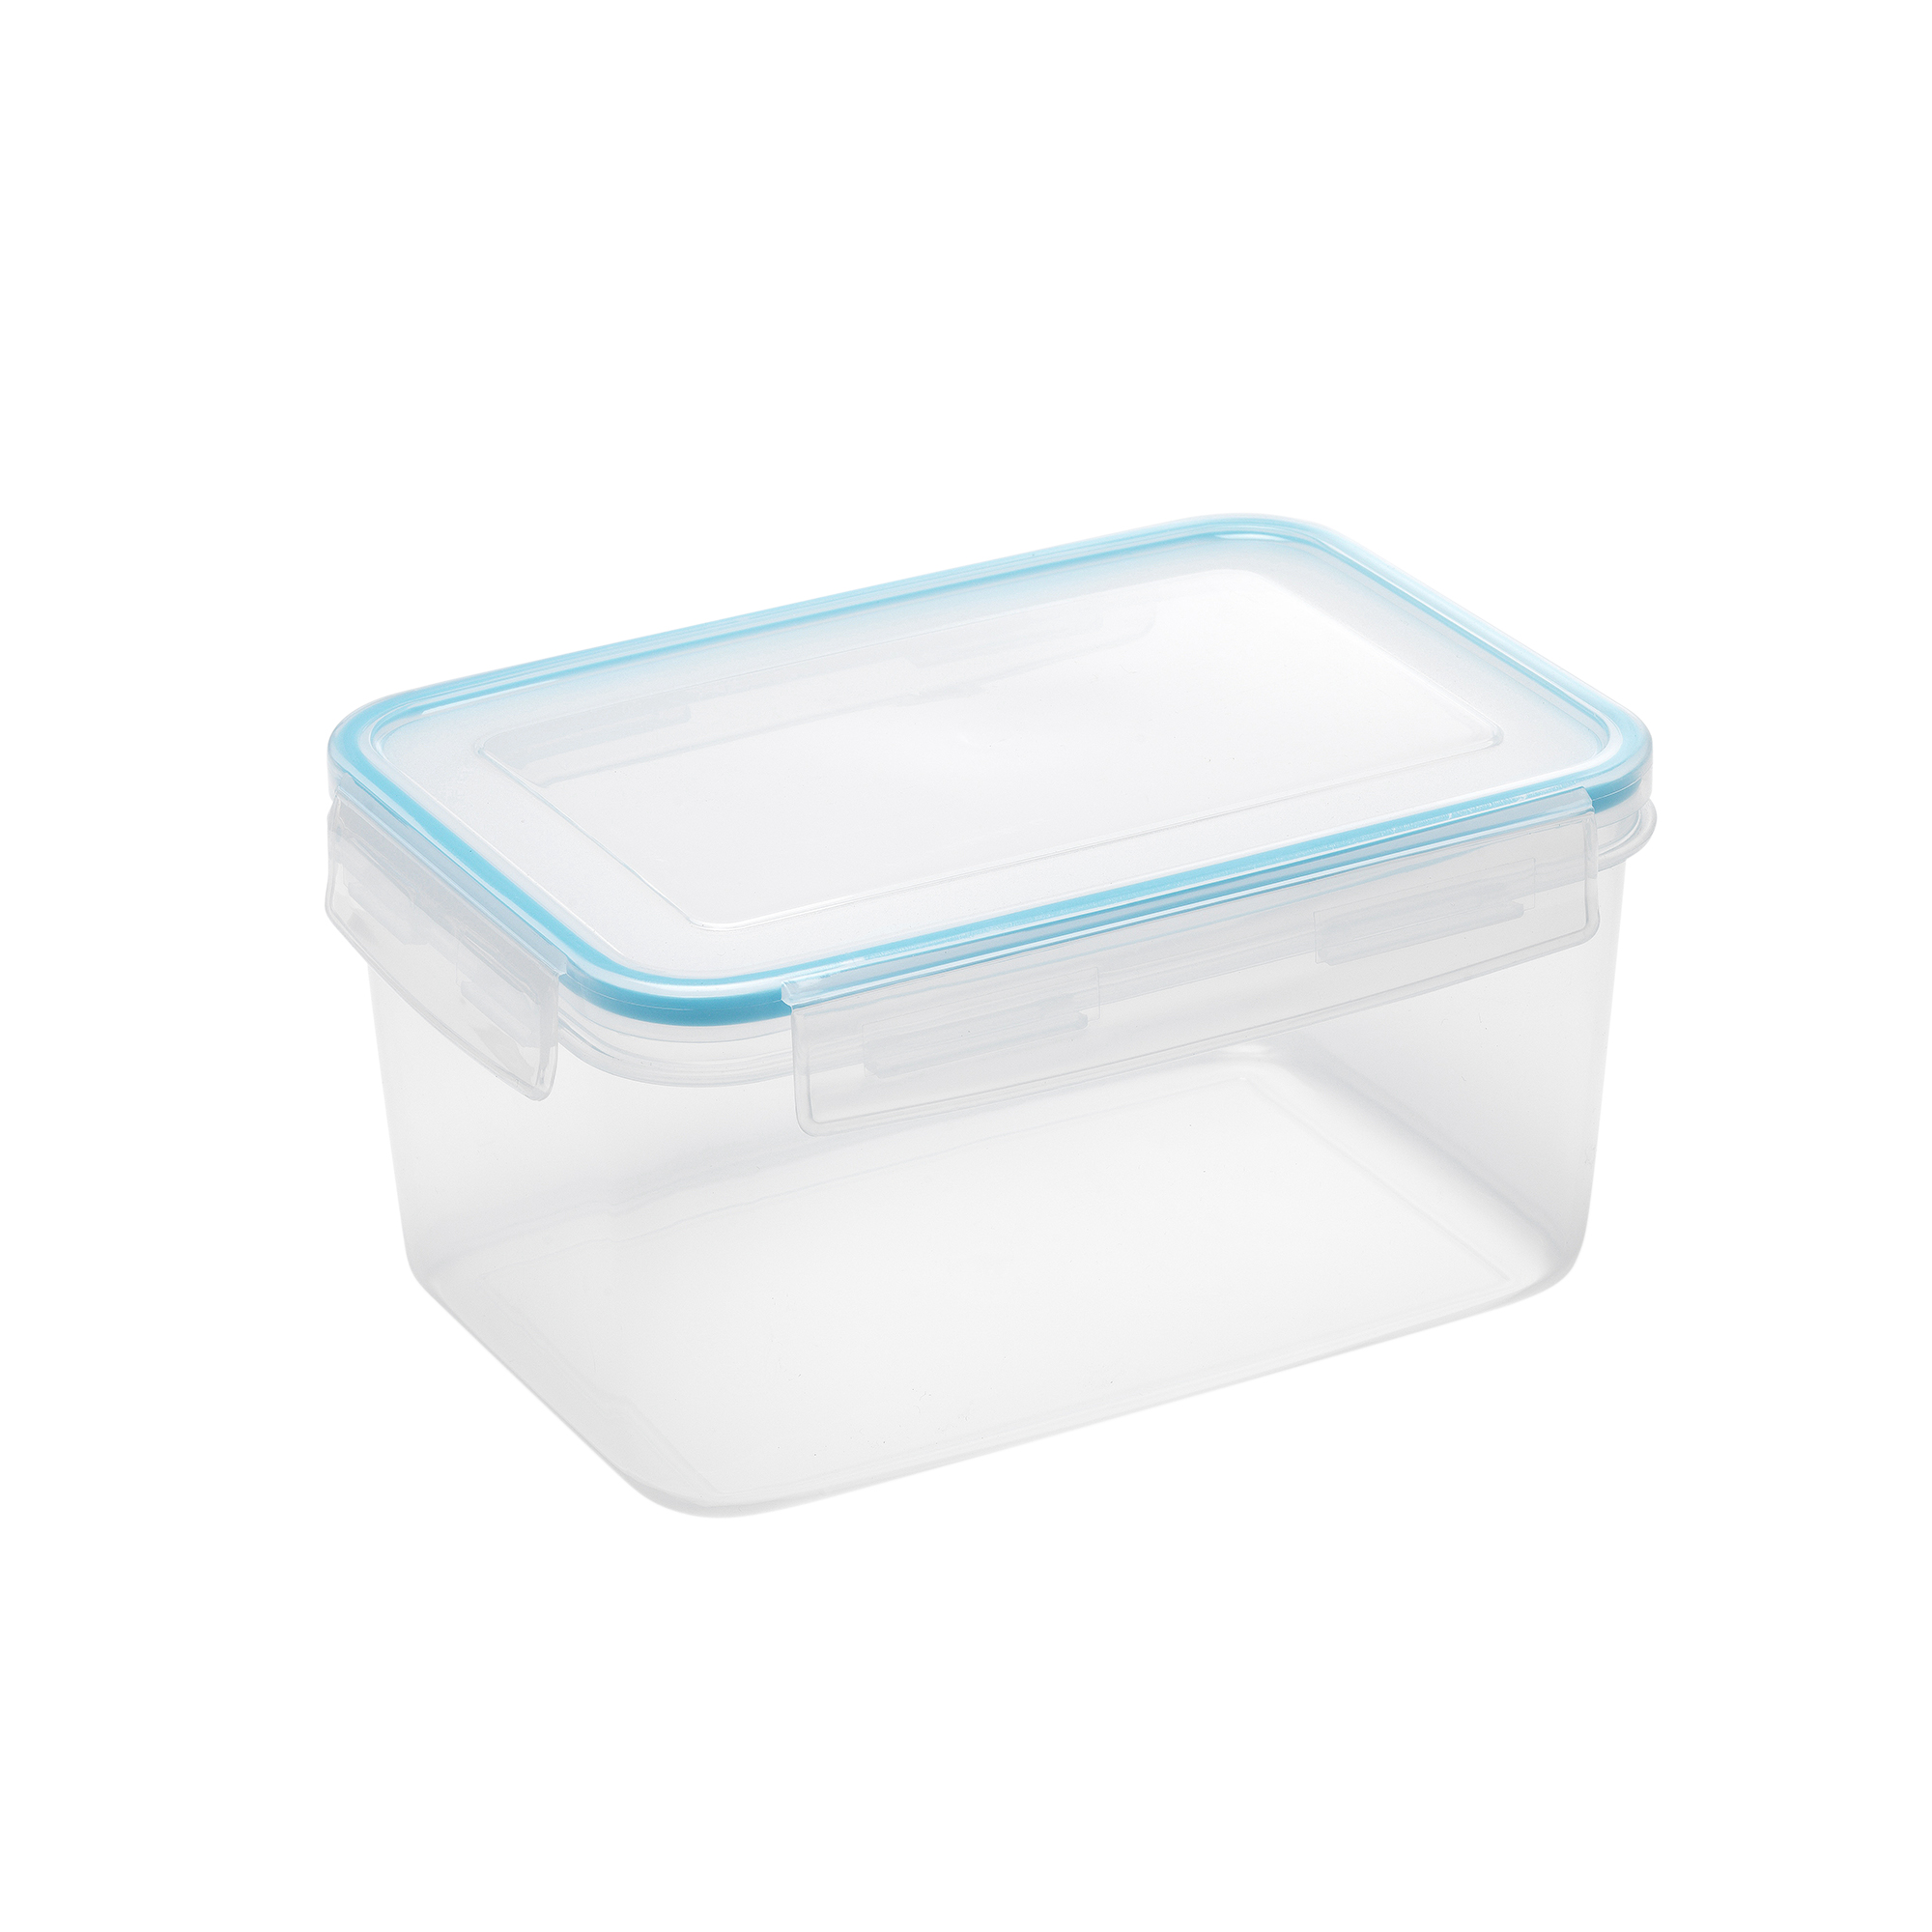 Domestic food storage containers Addis Clip & Close Rectangle 2.4 Litre Container Ref 502264